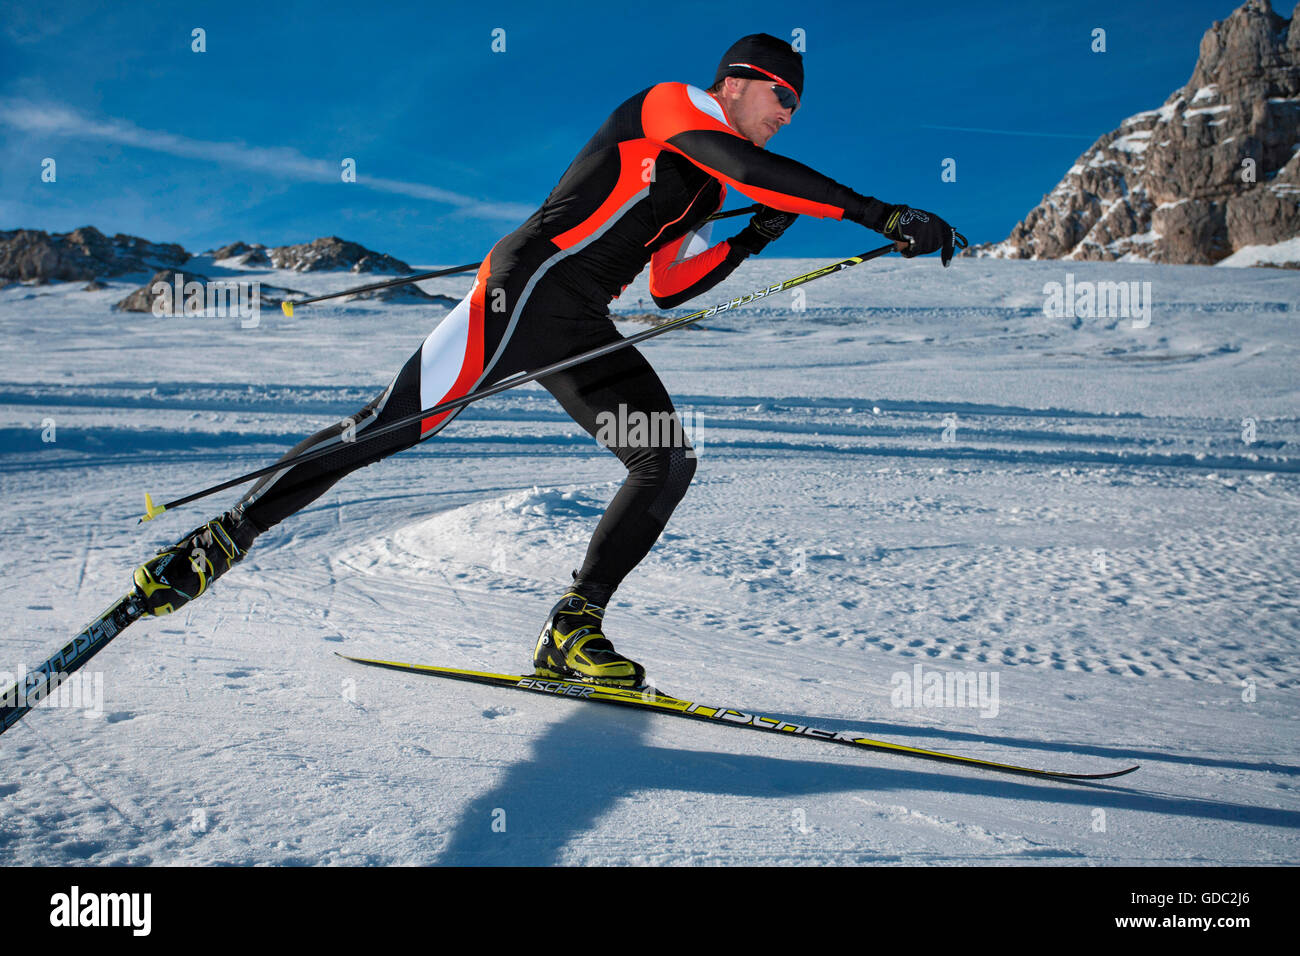 Cross-country skiing,Skating,dynamical,sport,Austria,Dachstein,ski,sport man, - Stock Image